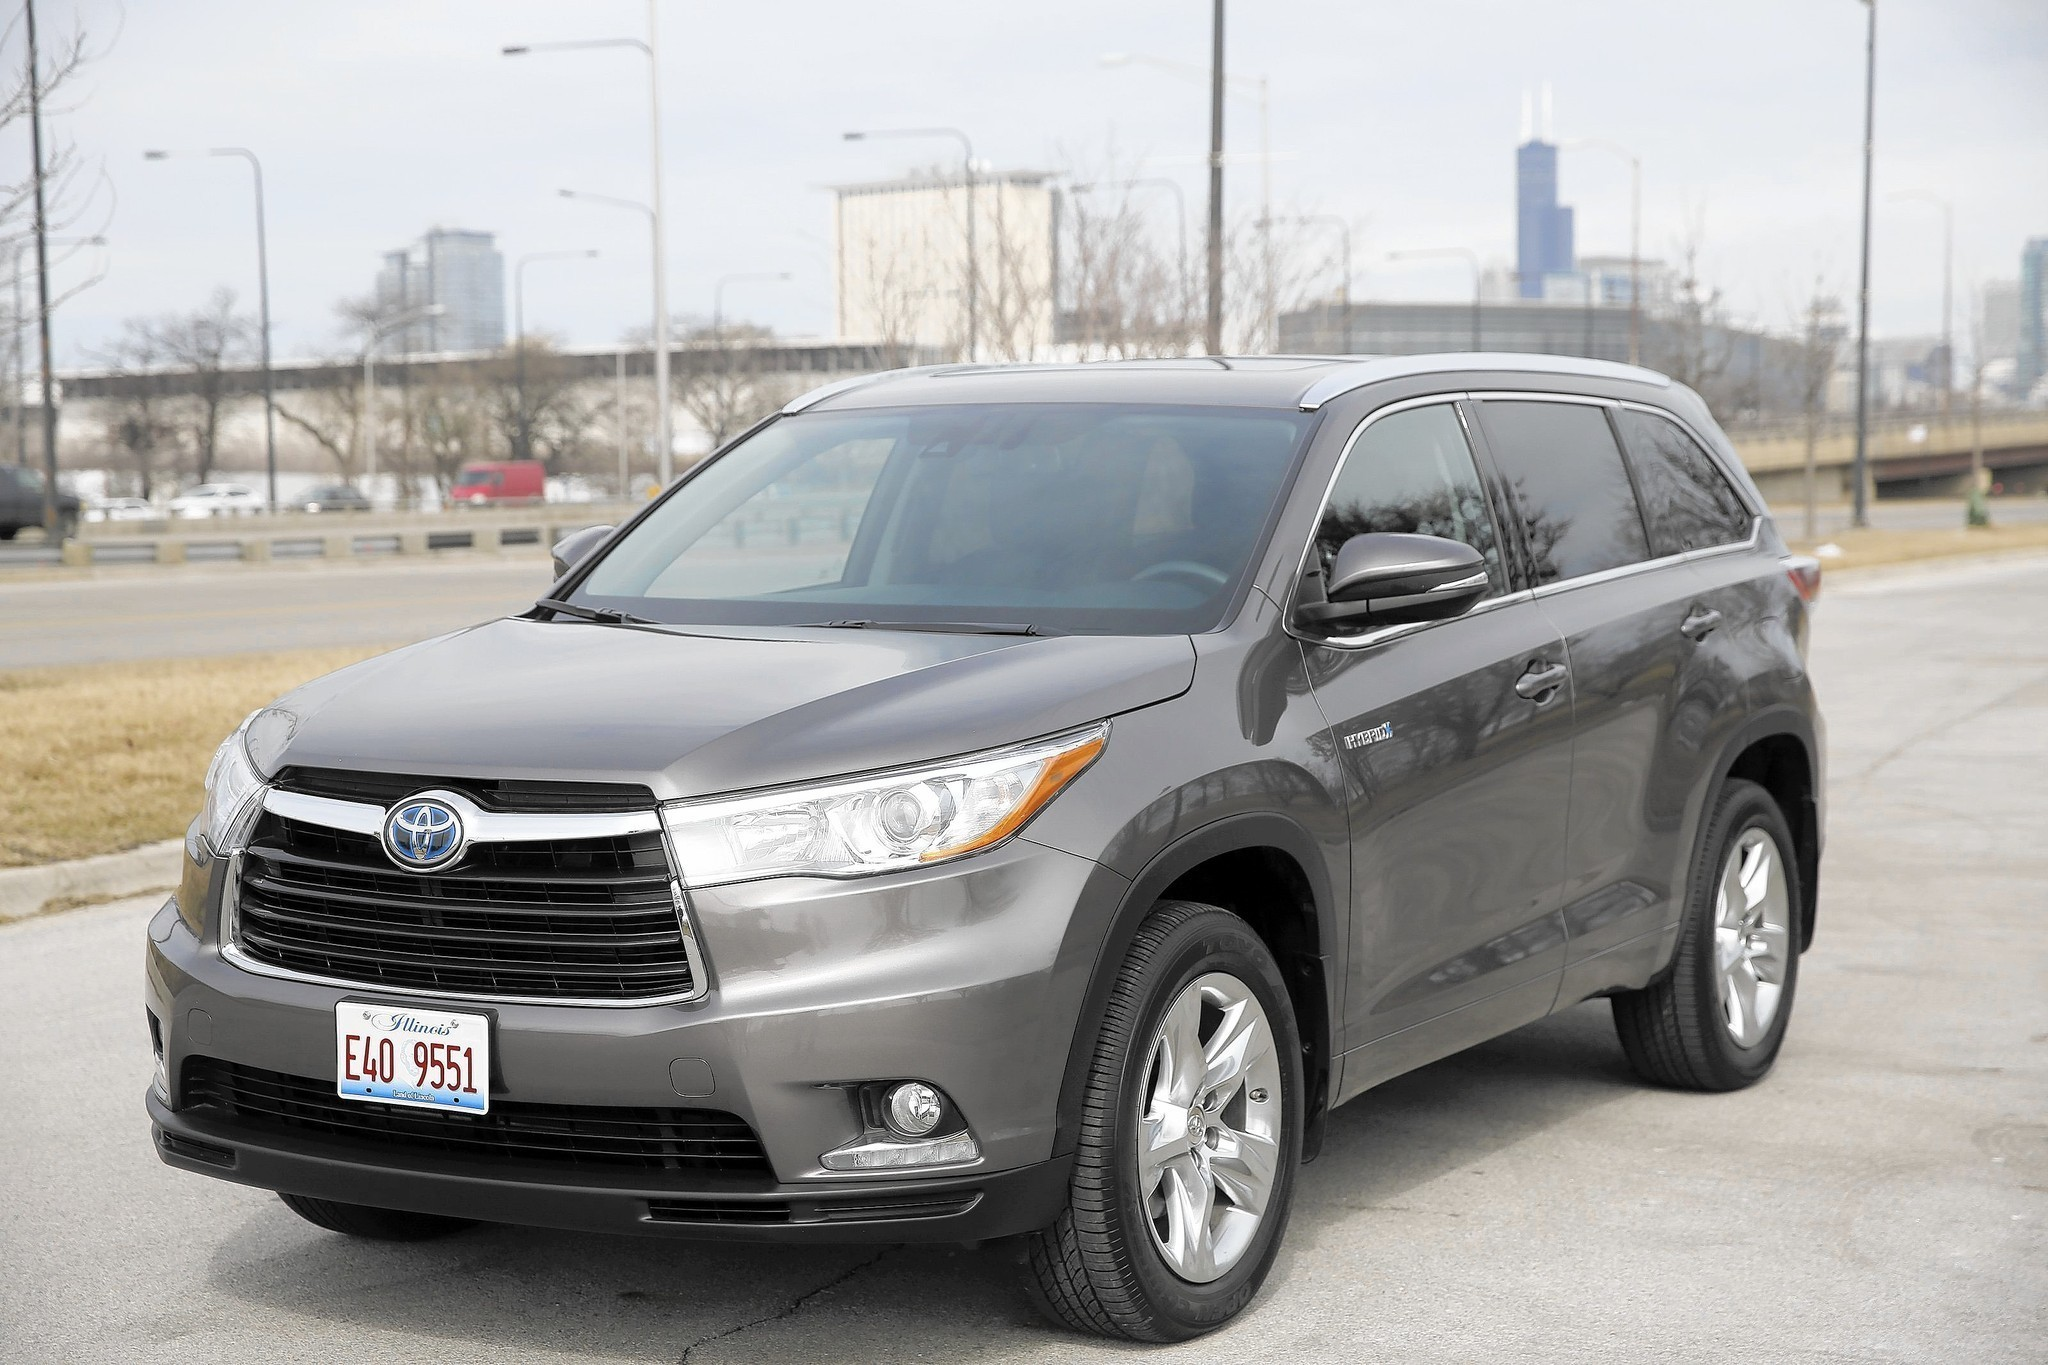 2015 toyota highlander hybrid skimps on fuel but nothing else chicago tribune. Black Bedroom Furniture Sets. Home Design Ideas